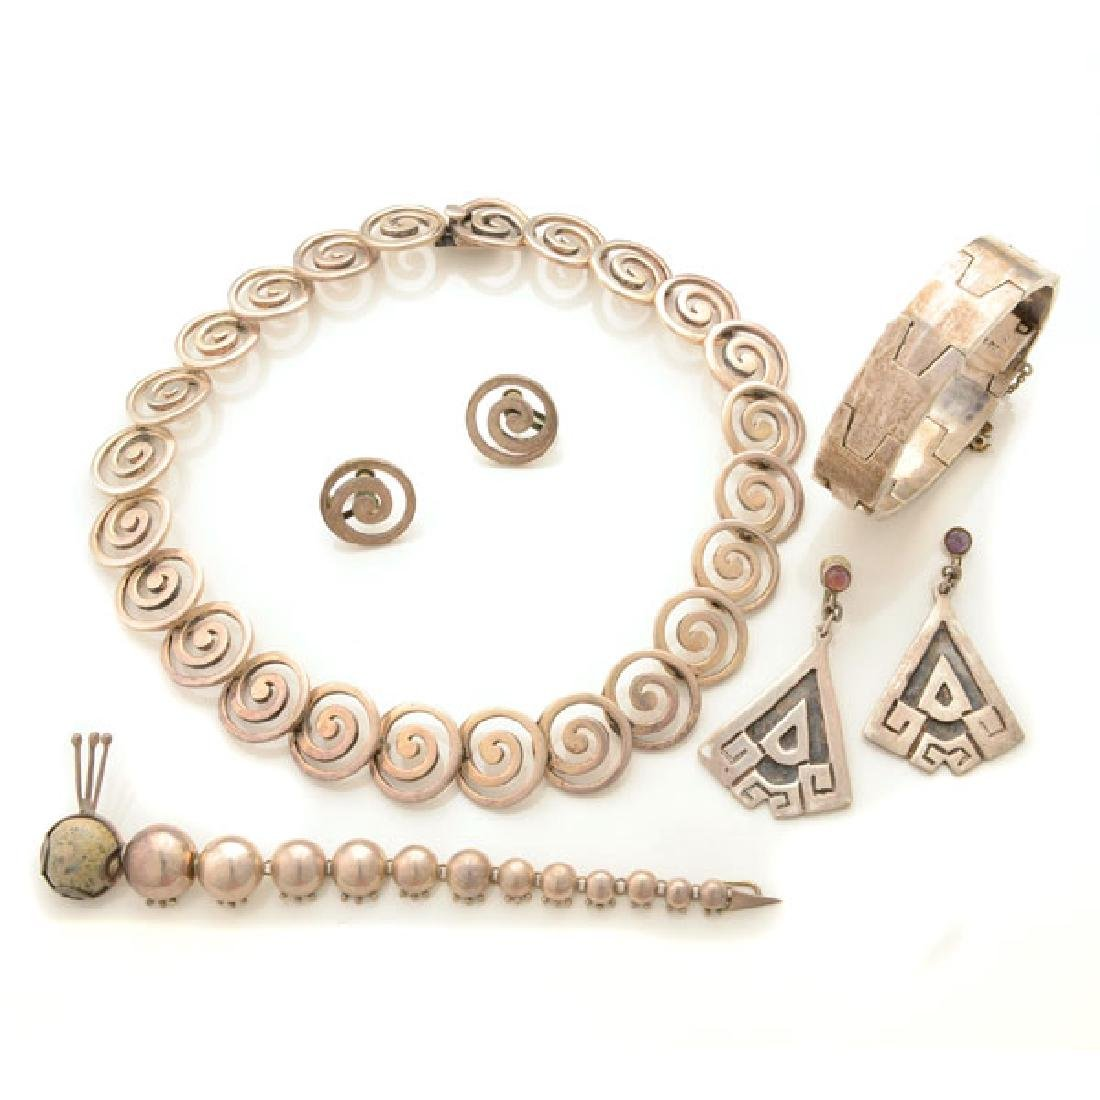 Collection of Mexican Silver Jewelry Items Including